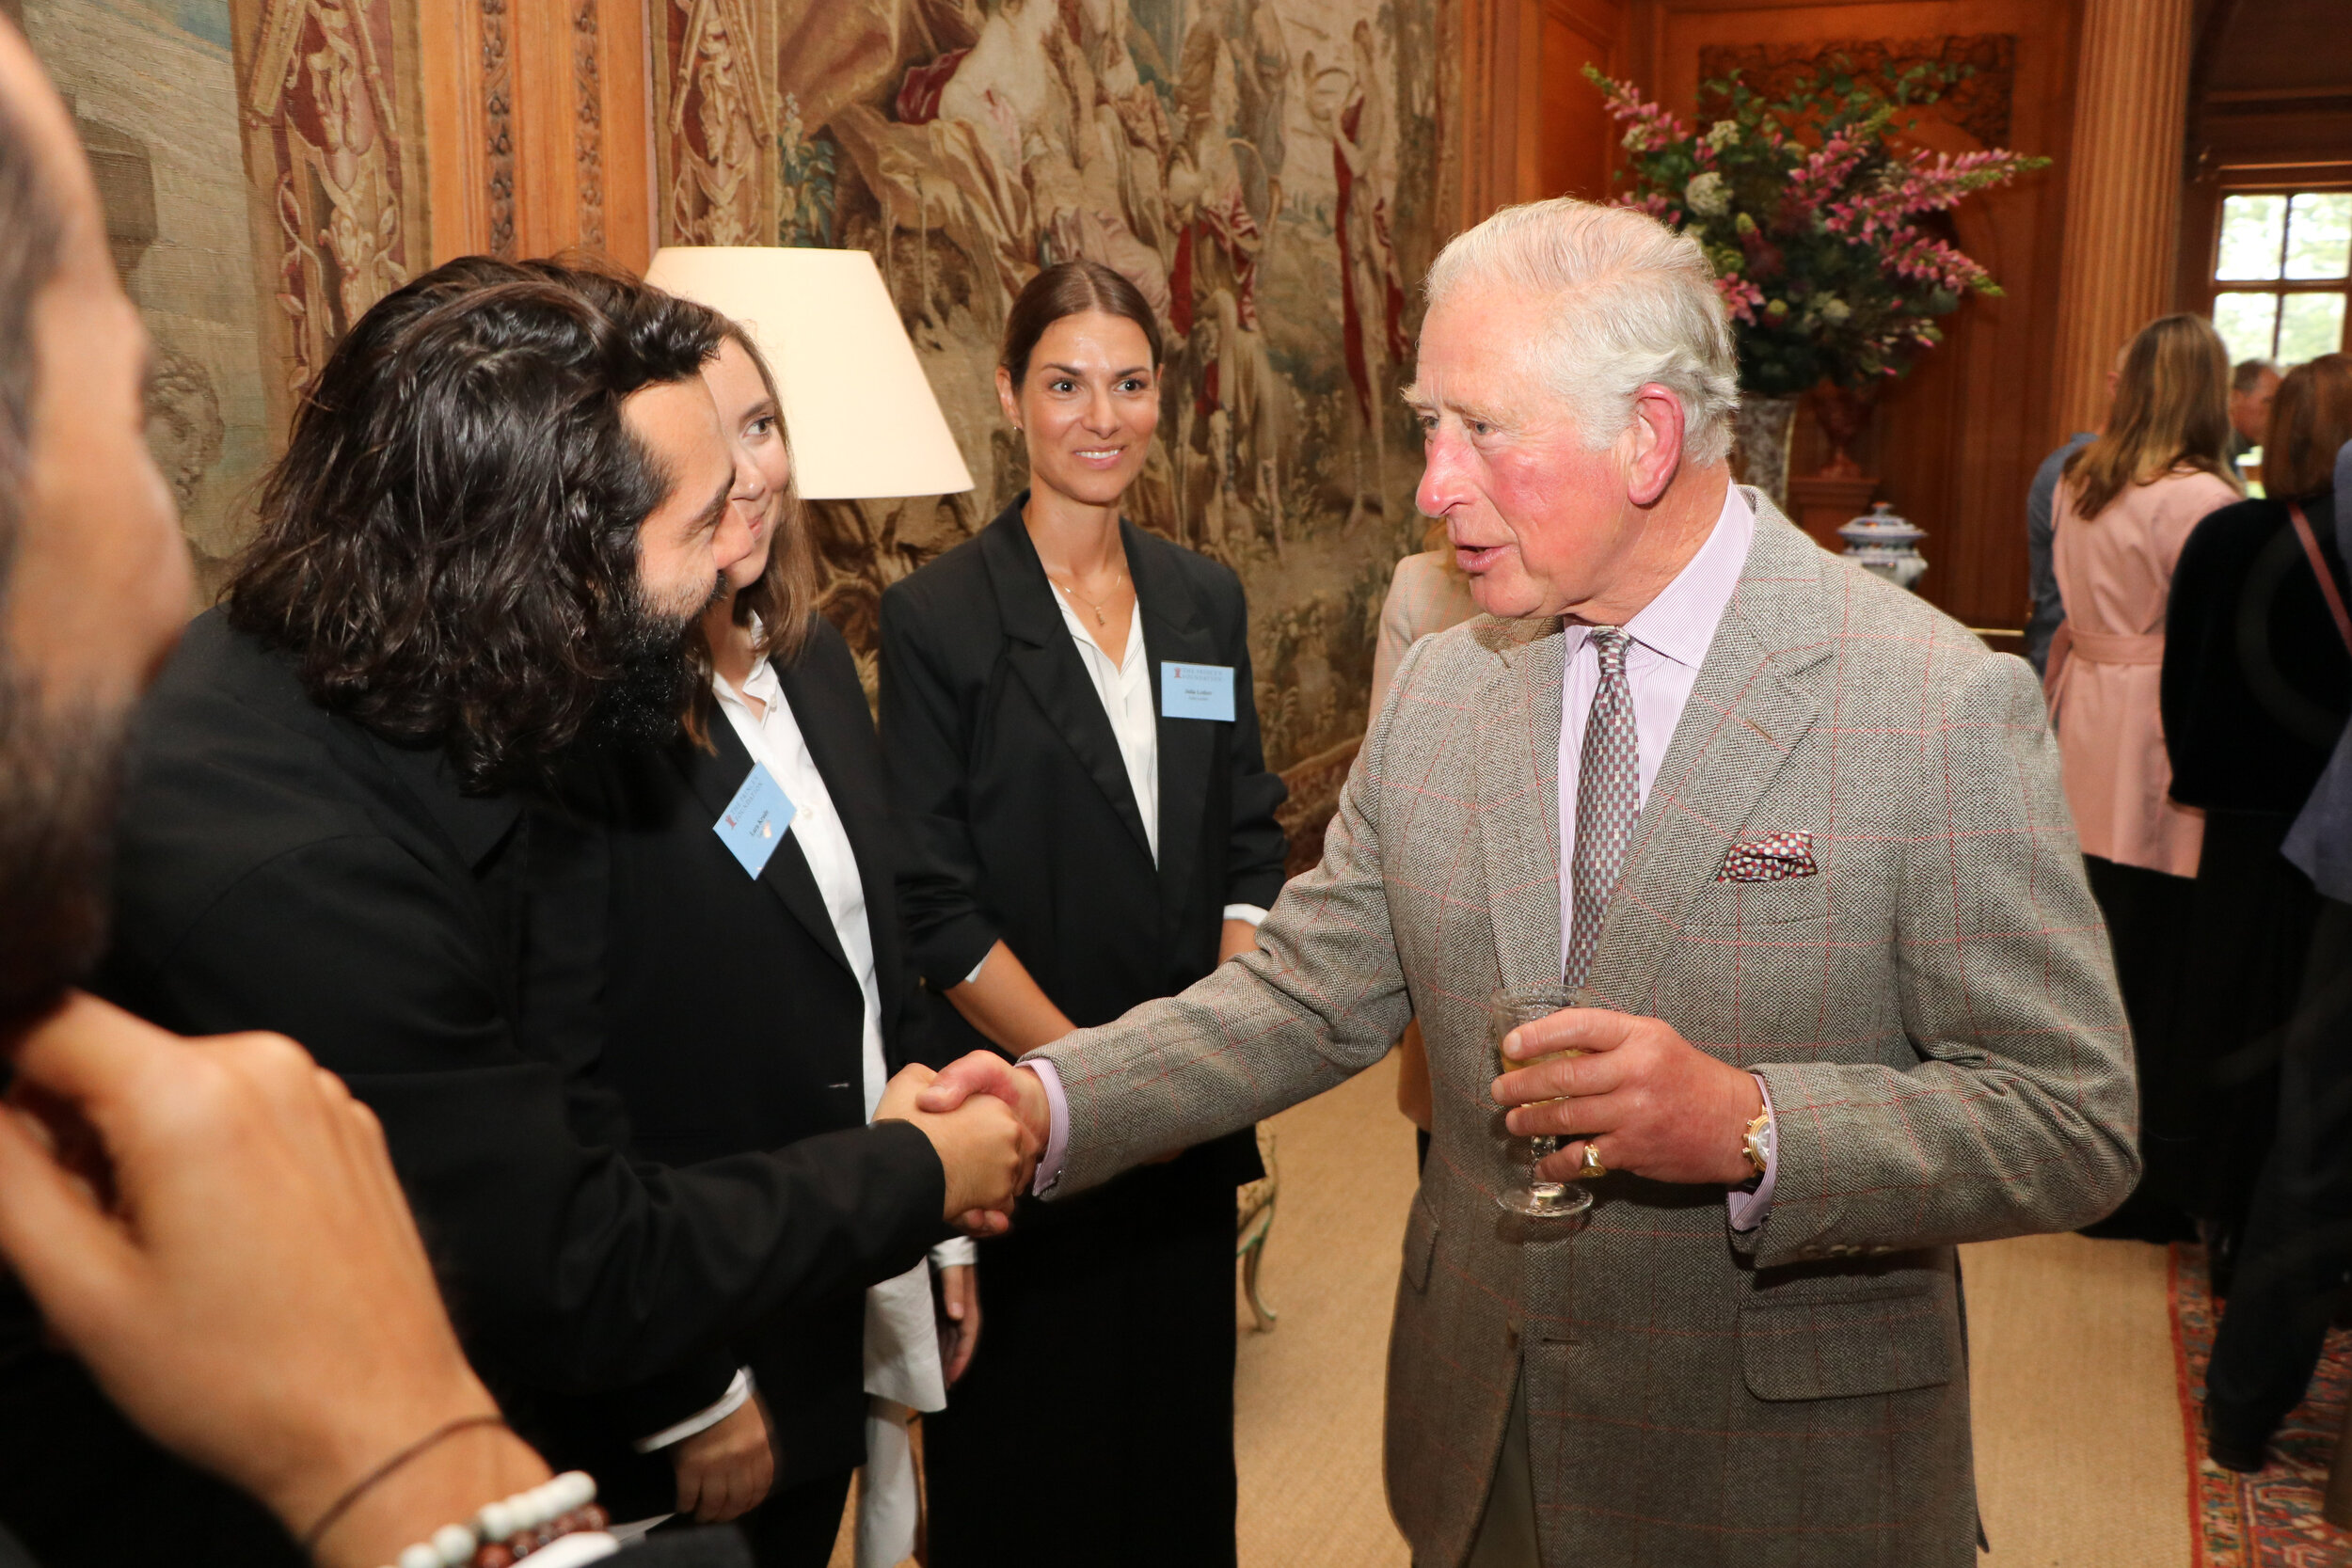 Fashion Council Germany - Dumfries House - HRH Prince Charles